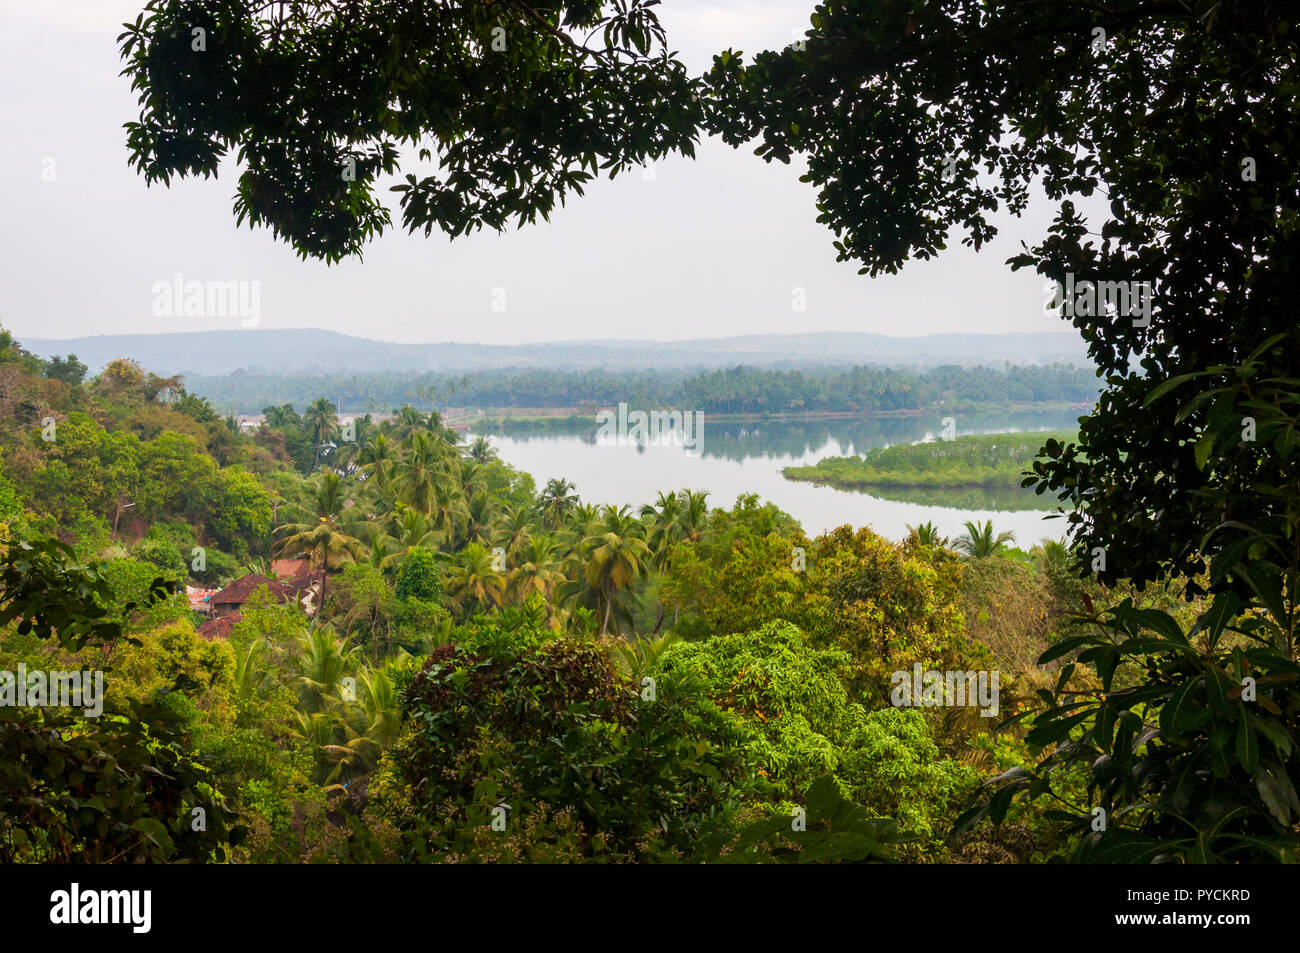 Emerald jungles, meandering rivers, rice plantations, pastures and many other scenic surroundings of North Goa. - Stock Image